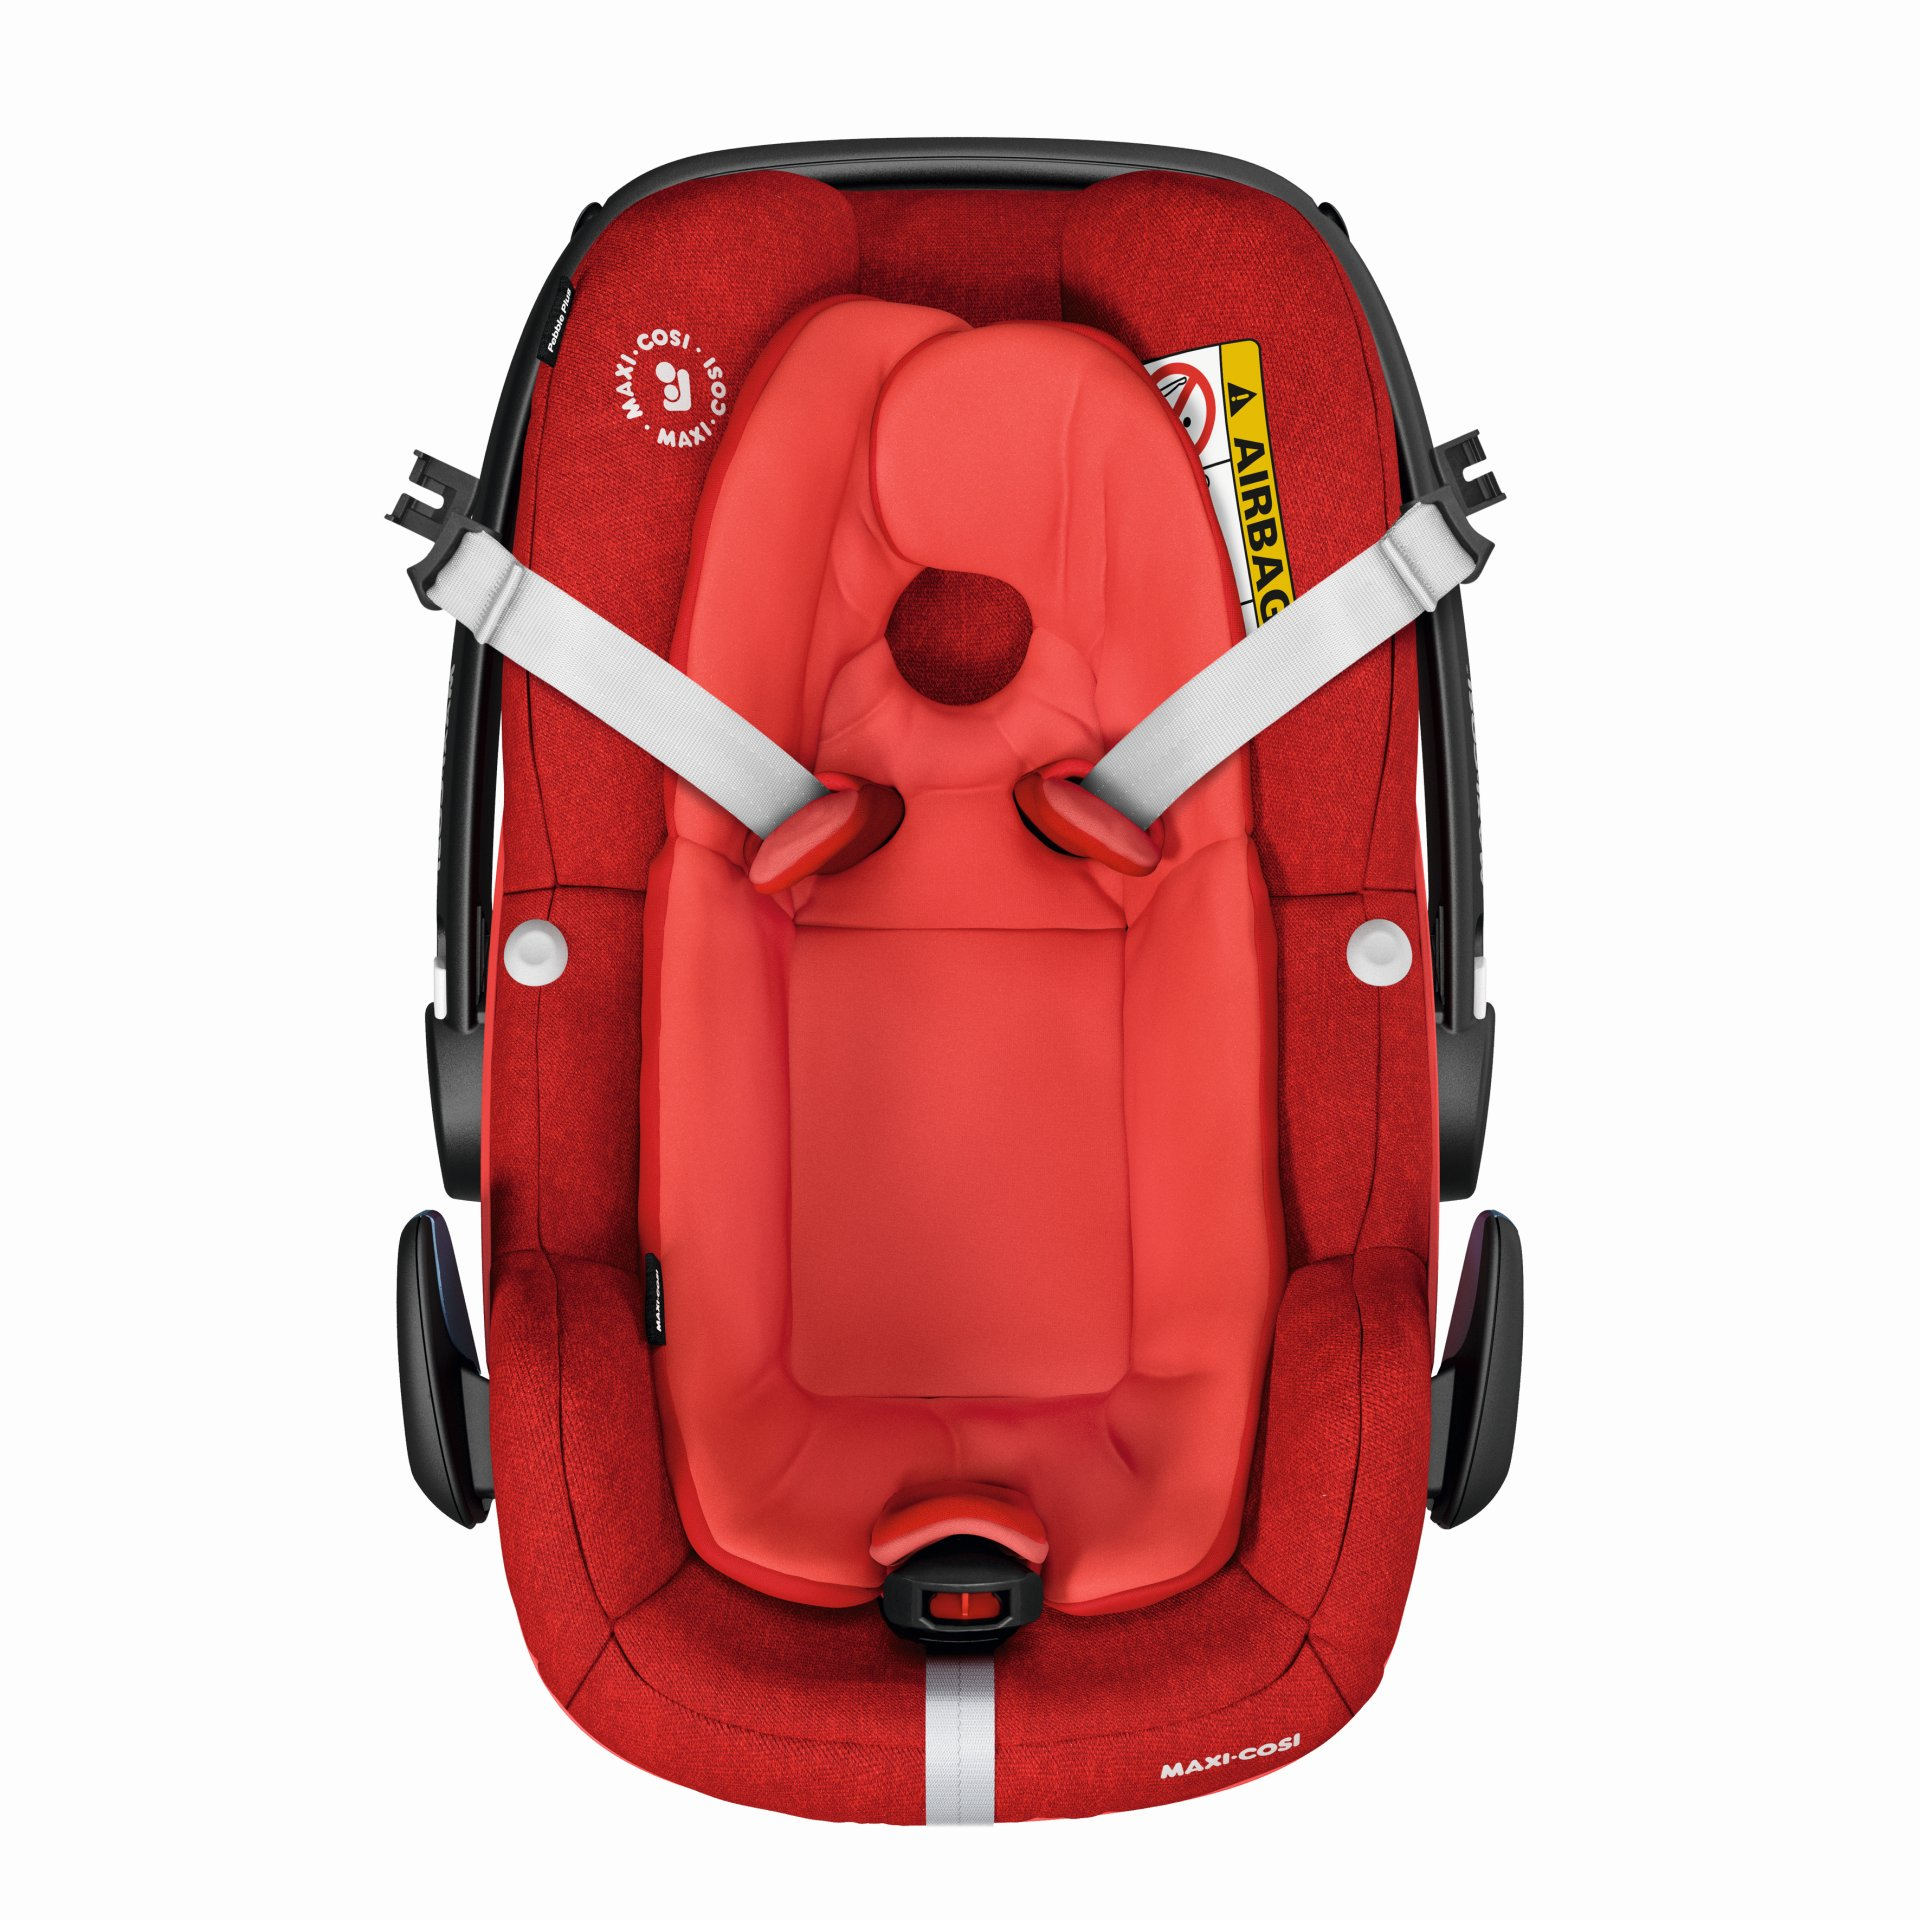 maxi cosi infant car seat pebble plus 2019 nomad red buy at kidsroom car seats. Black Bedroom Furniture Sets. Home Design Ideas